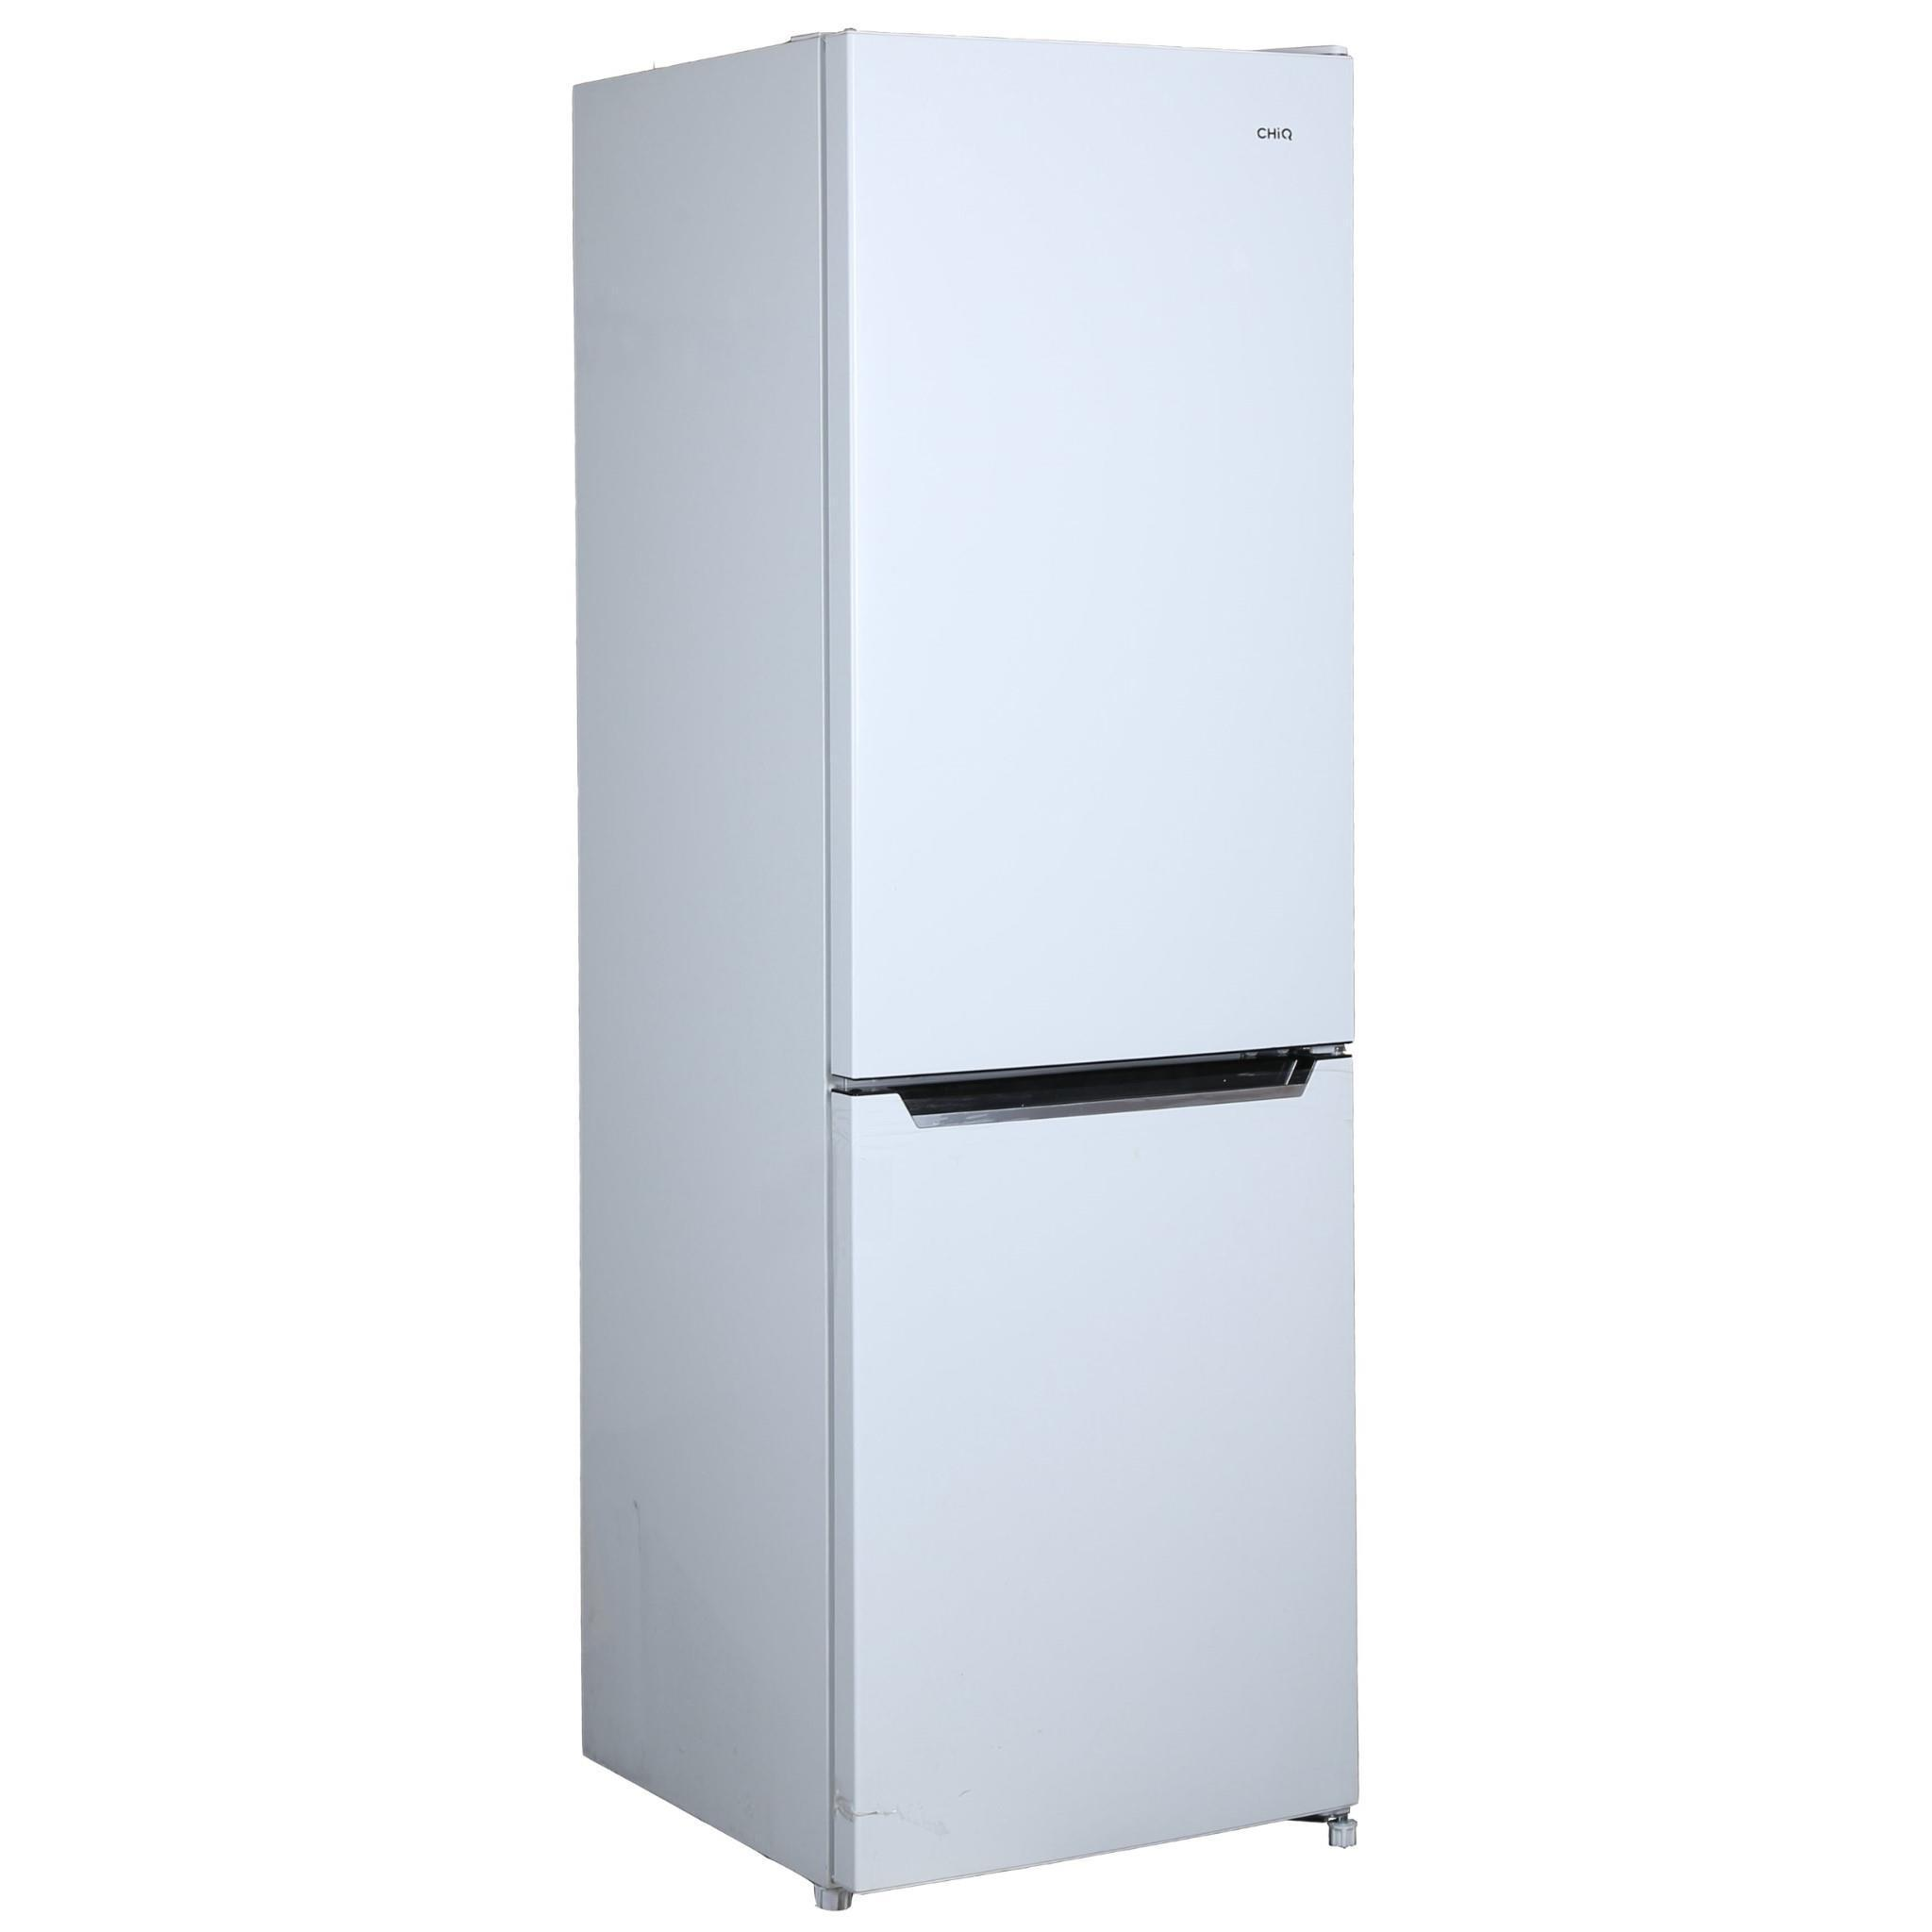 CHiQ CBM251W 251L Bottom Mount Fridge